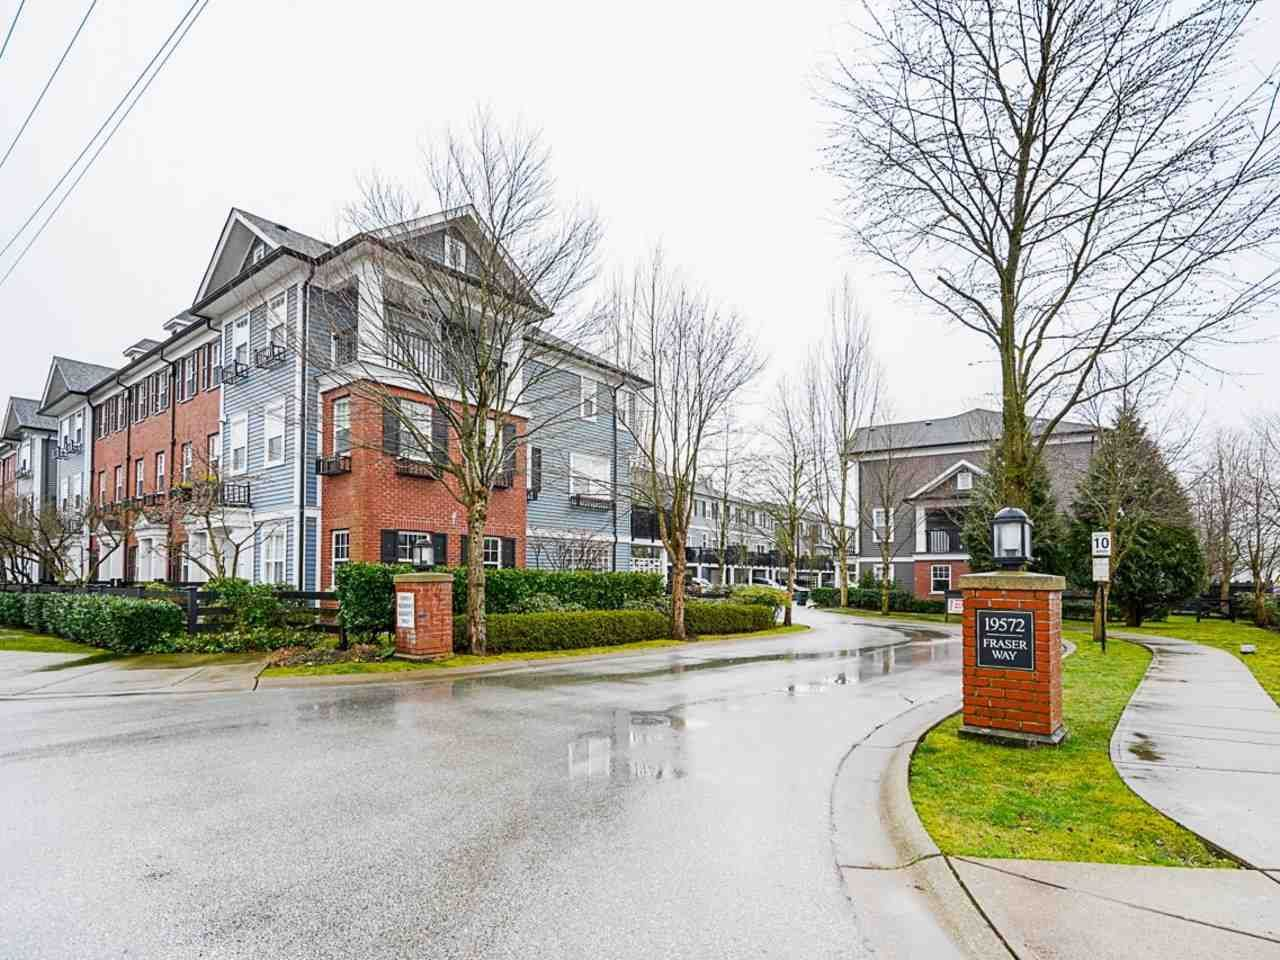 """Main Photo: 30 19572 FRASER Way in Pitt Meadows: South Meadows Townhouse for sale in """"COHO II"""" : MLS®# R2540843"""